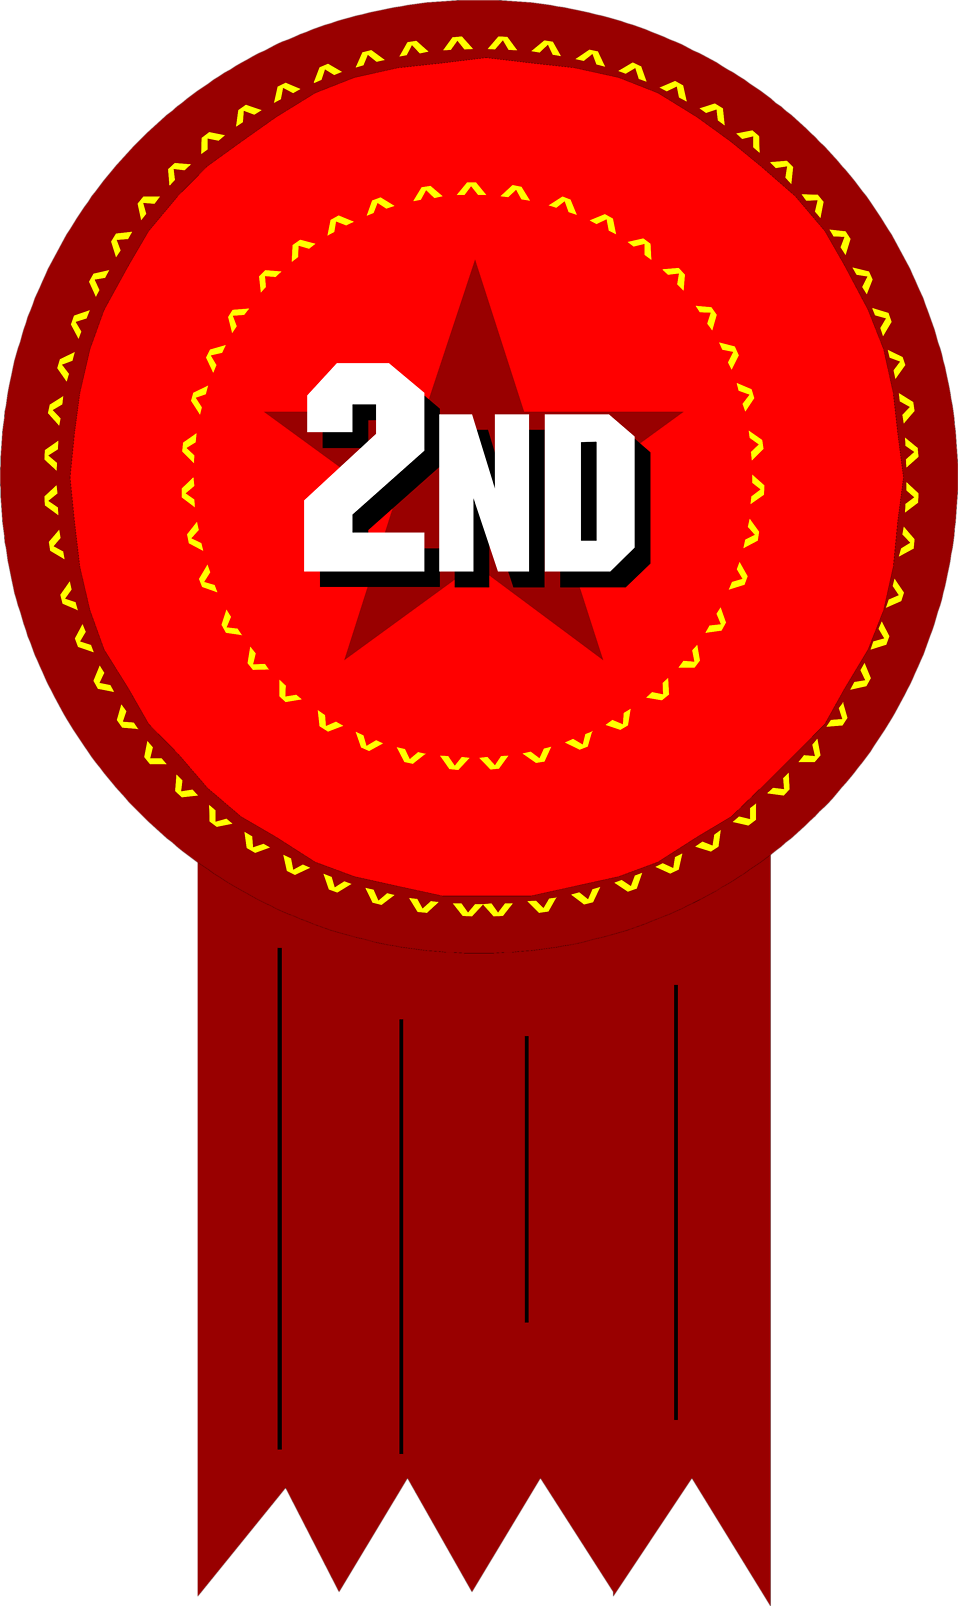 First place award badge template - visualbrains.info